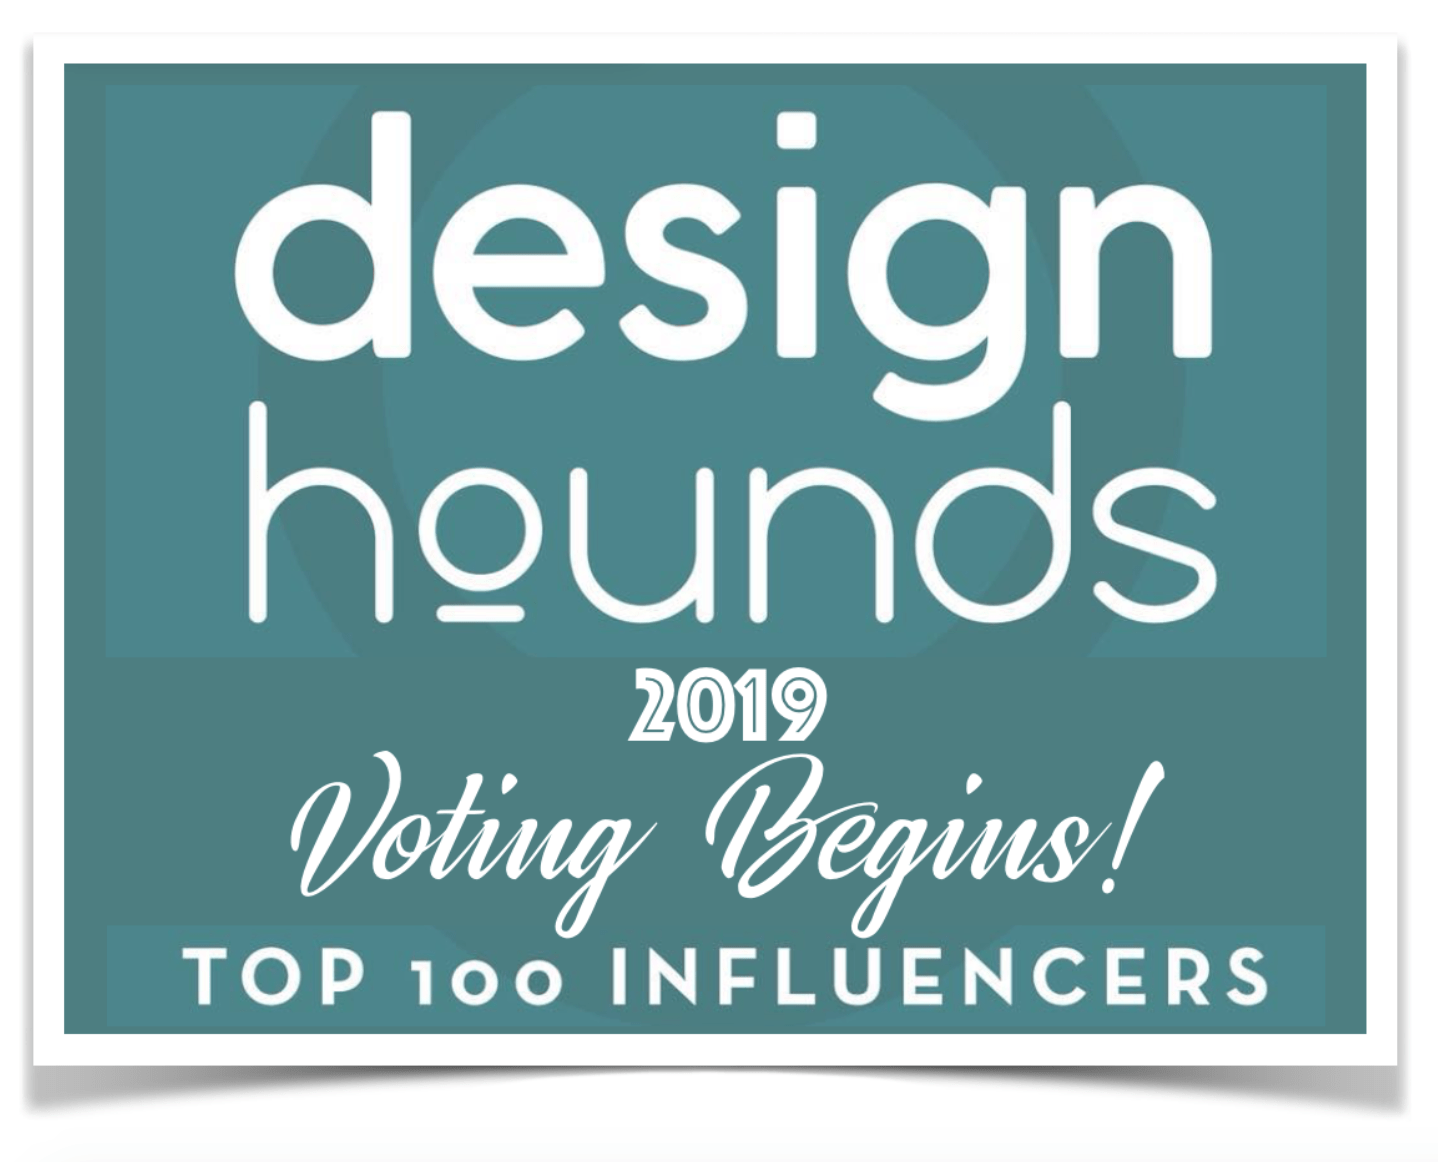 Design Hounds, Modenus, Christine Kohut Interiors, #designninja, Top 100 Influencers, Vote